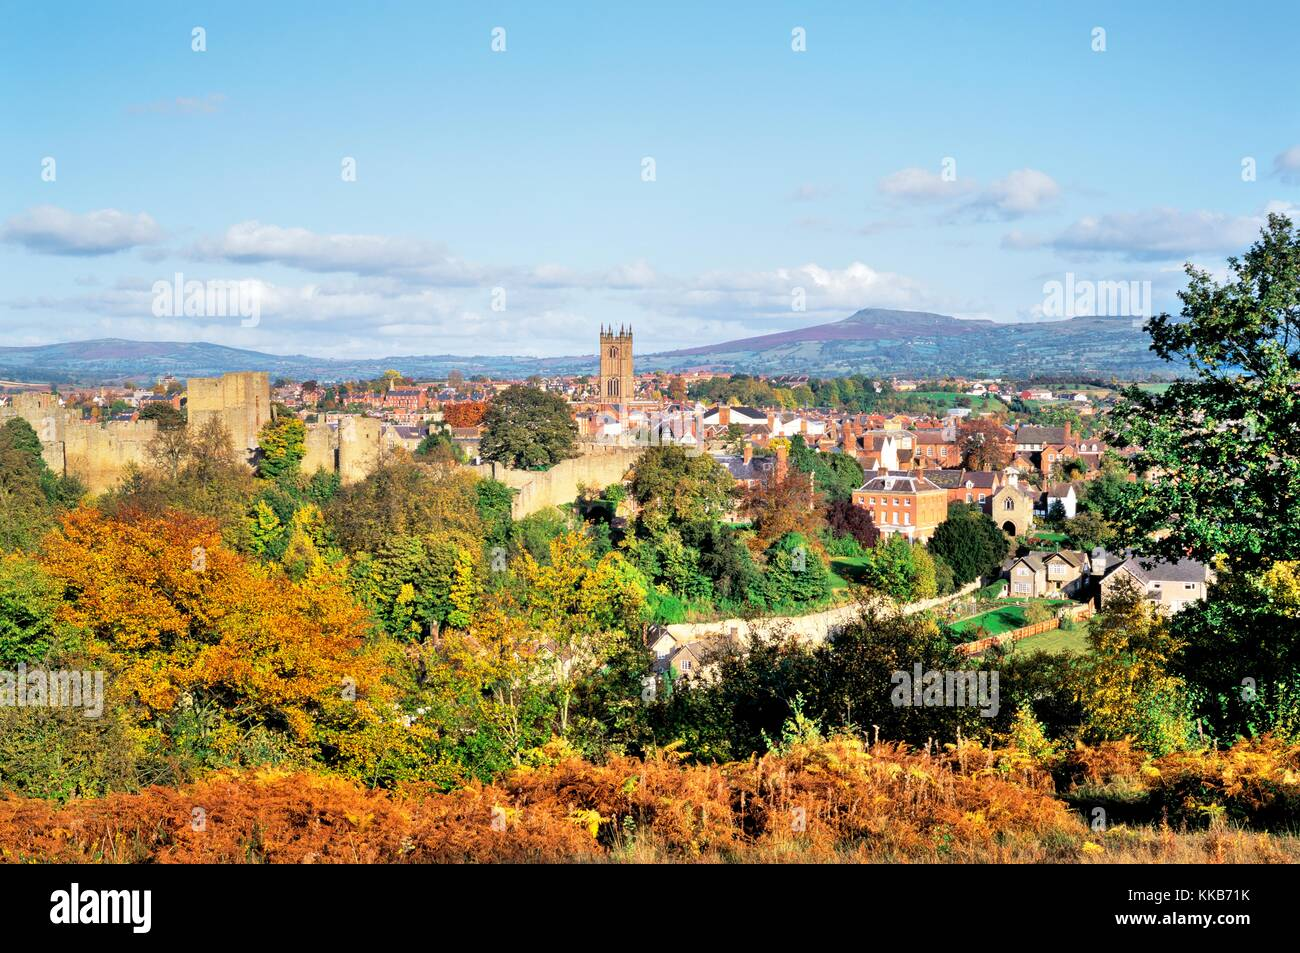 Mediaeval Ludlow town and castle, Shropshire, England. Late summer, early autumn - Stock Image